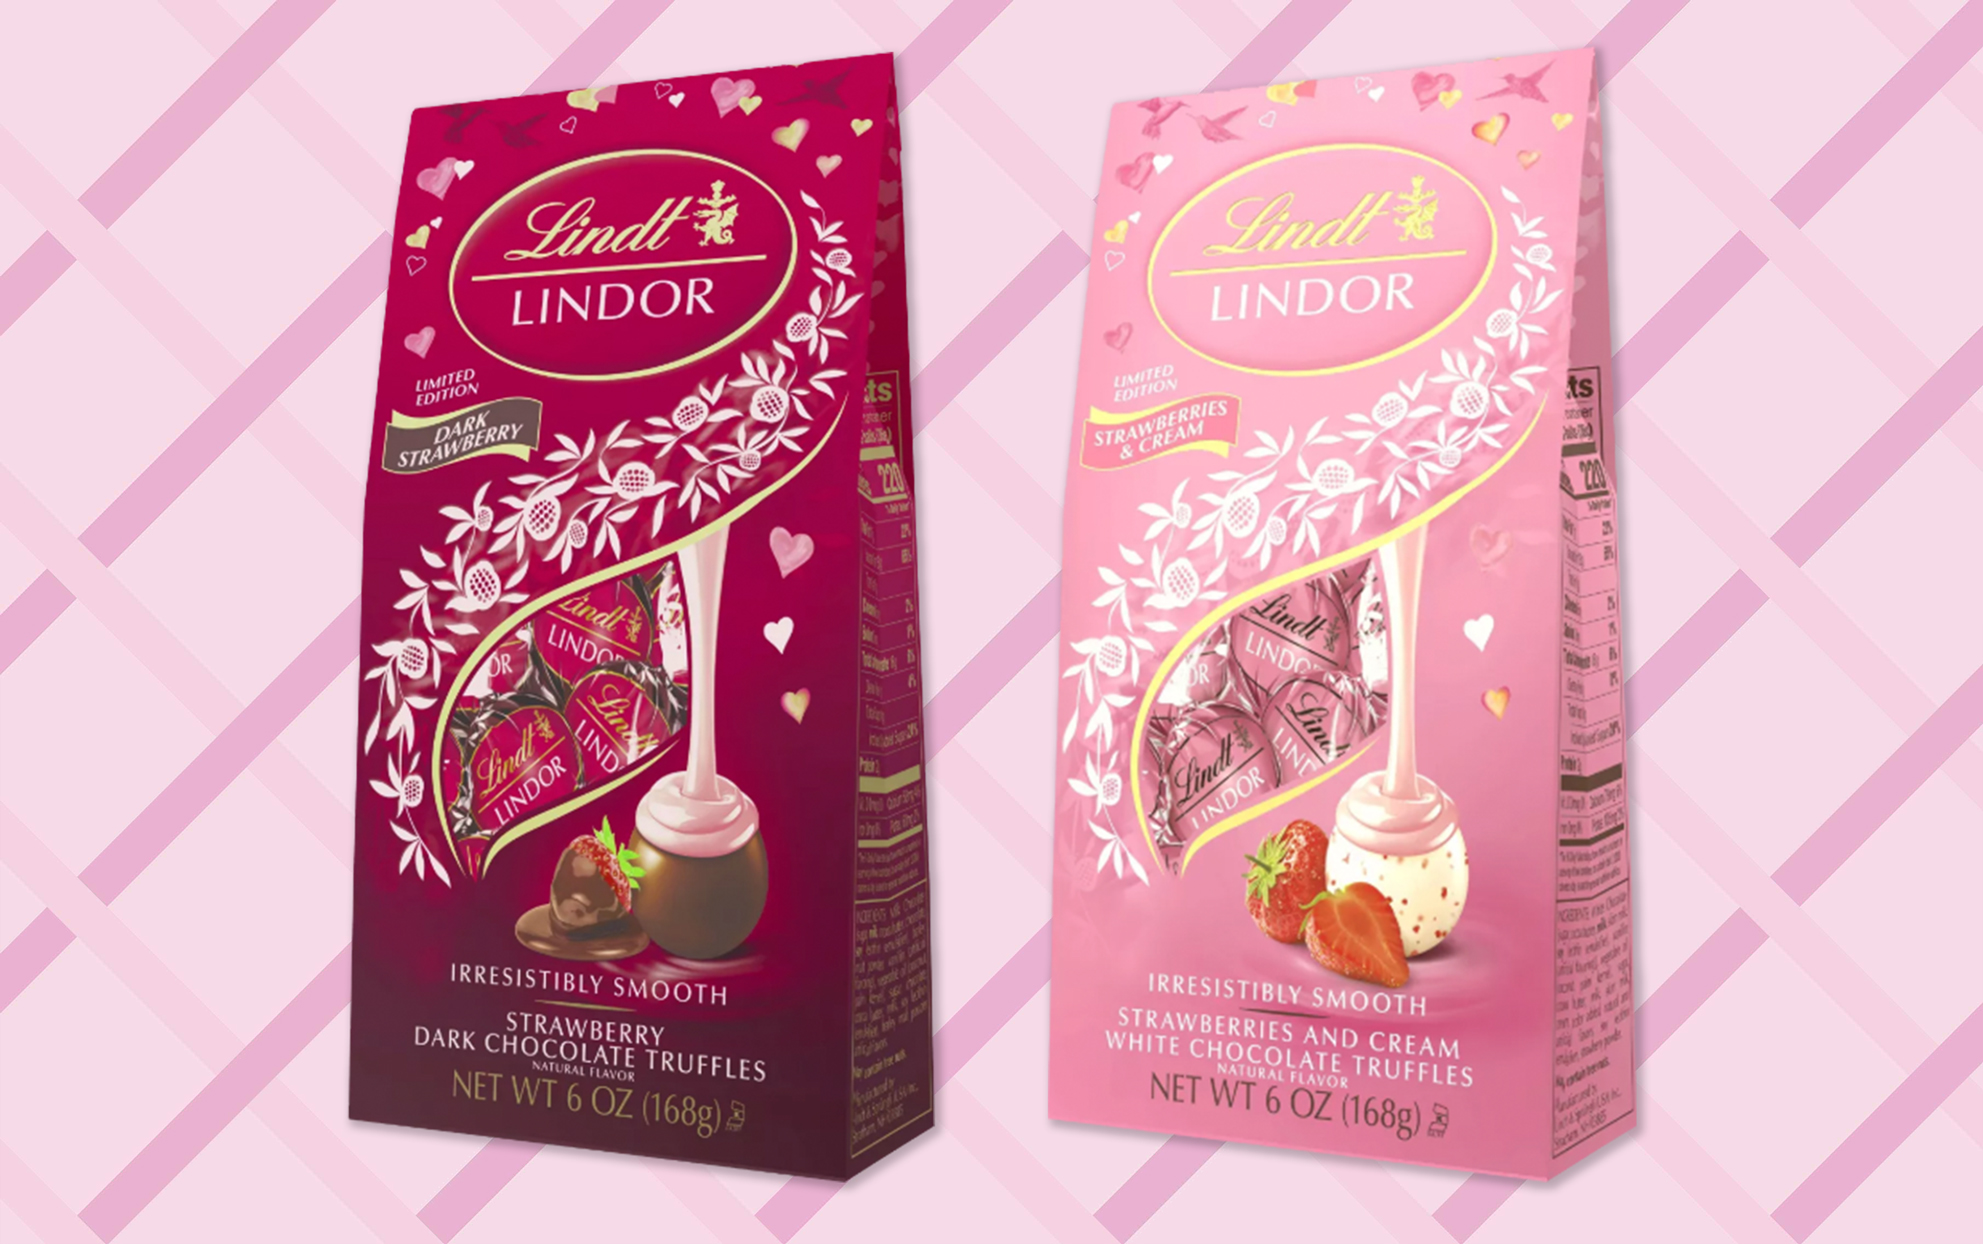 Two packages of Lindt Lindor truffles for Valentine's Day